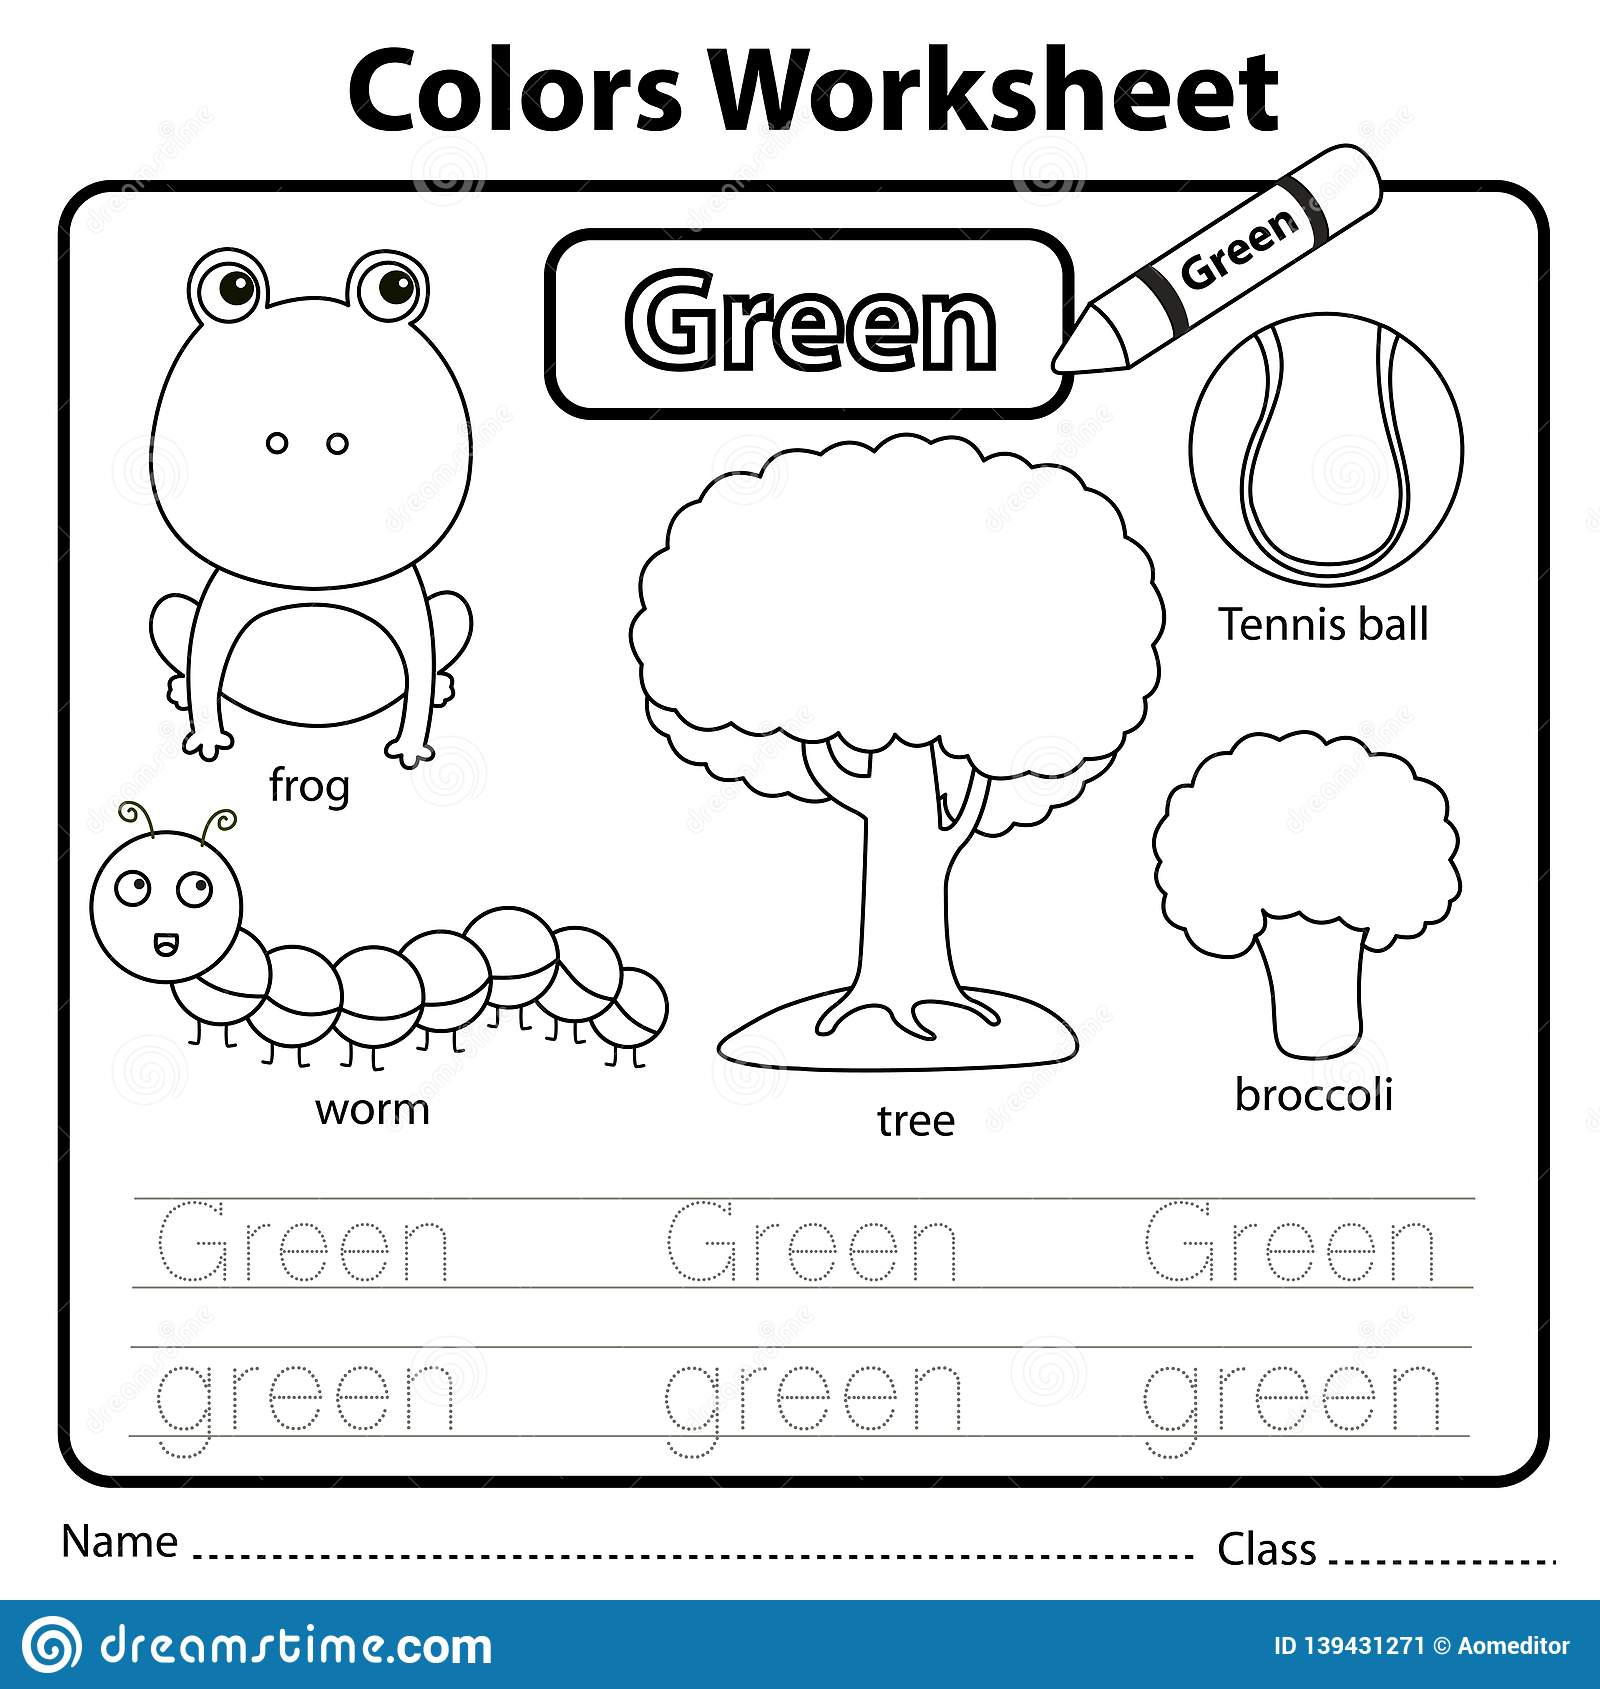 Illustrator Of Color Worksheet Green Stock Vector